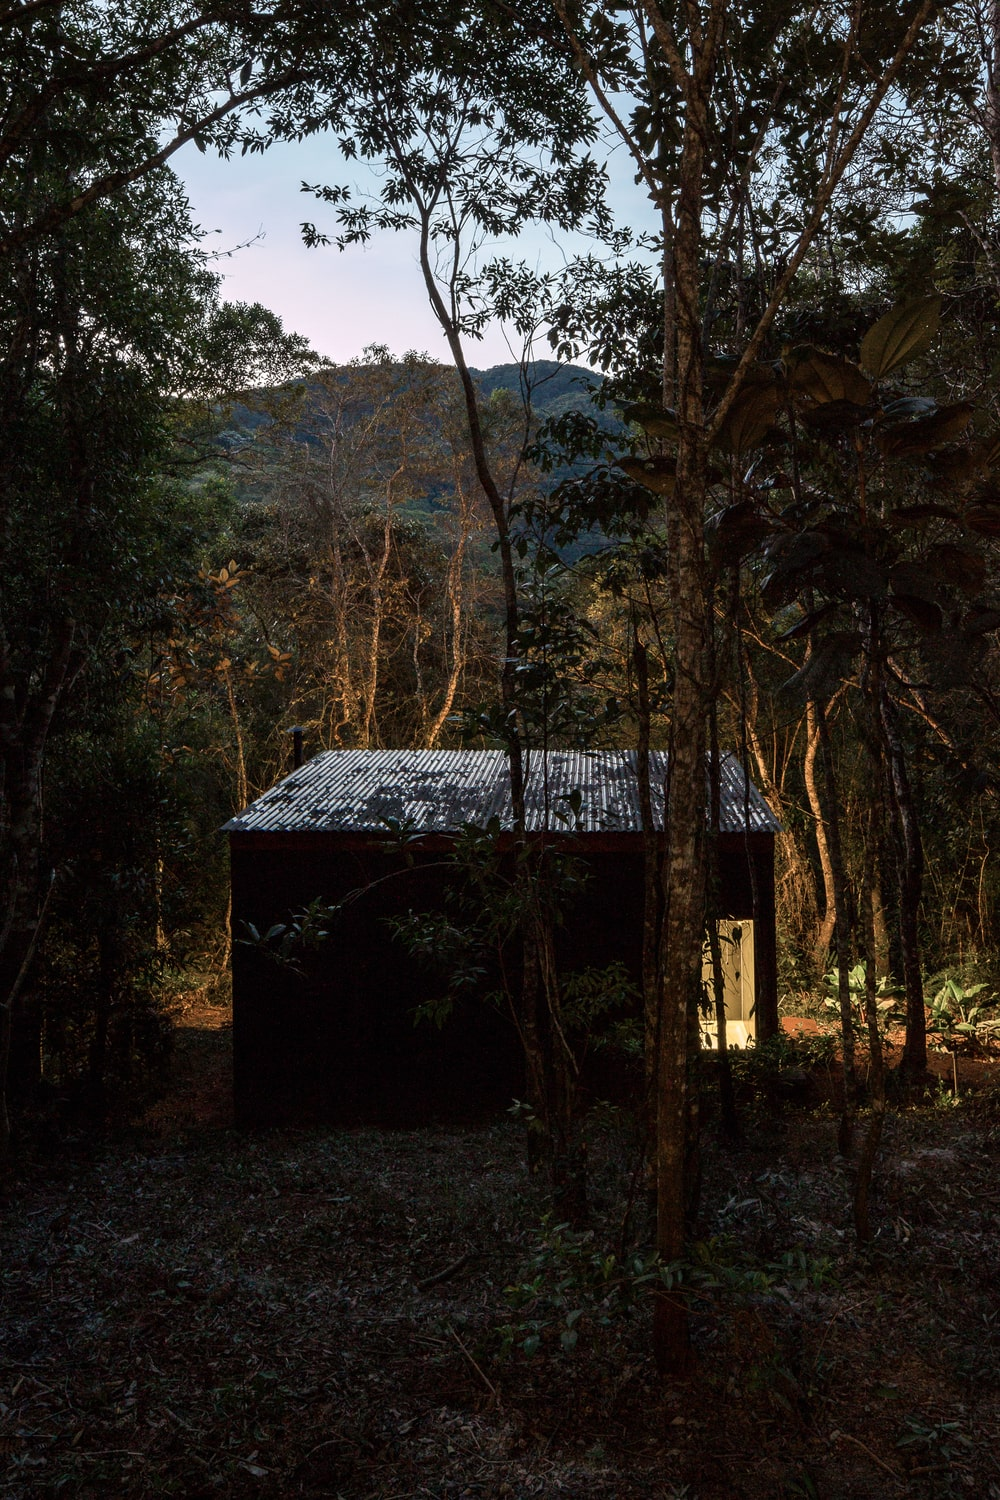 The house has a warm glow that makes it stand out against the dark nighttime forest around it.